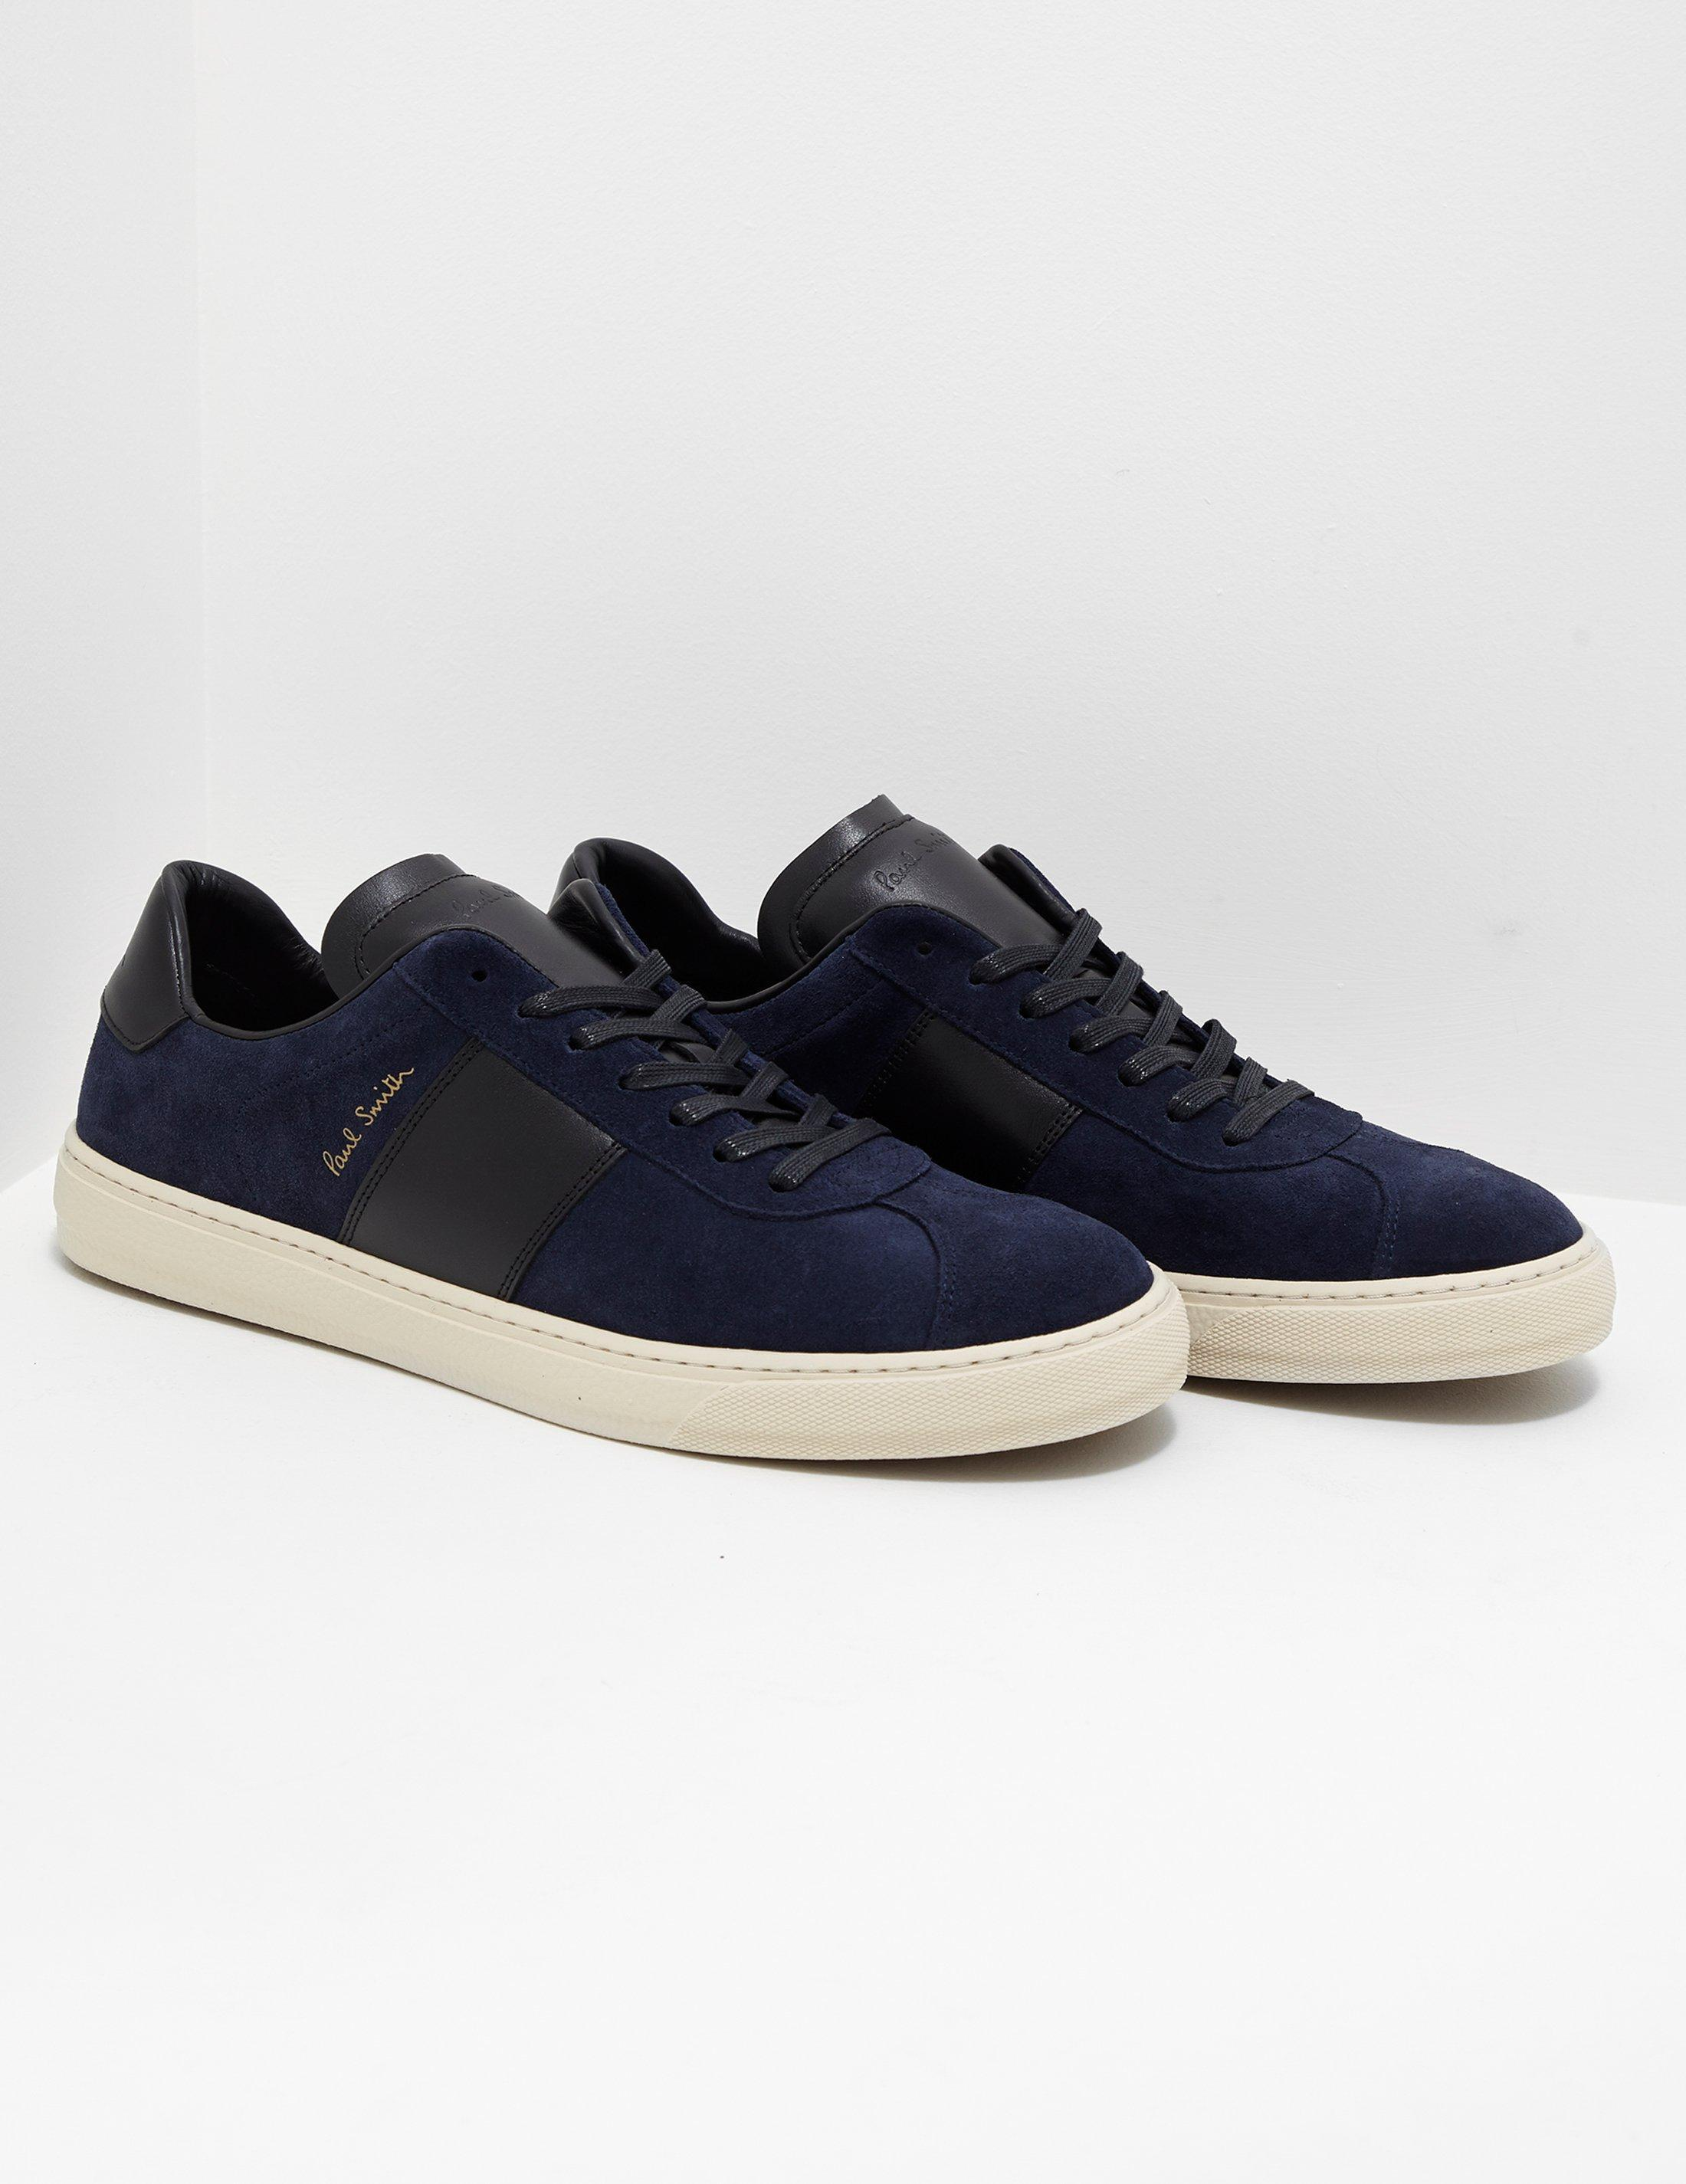 Navy and Black Levon Sneakers Paul Smith IywJxy4Rq